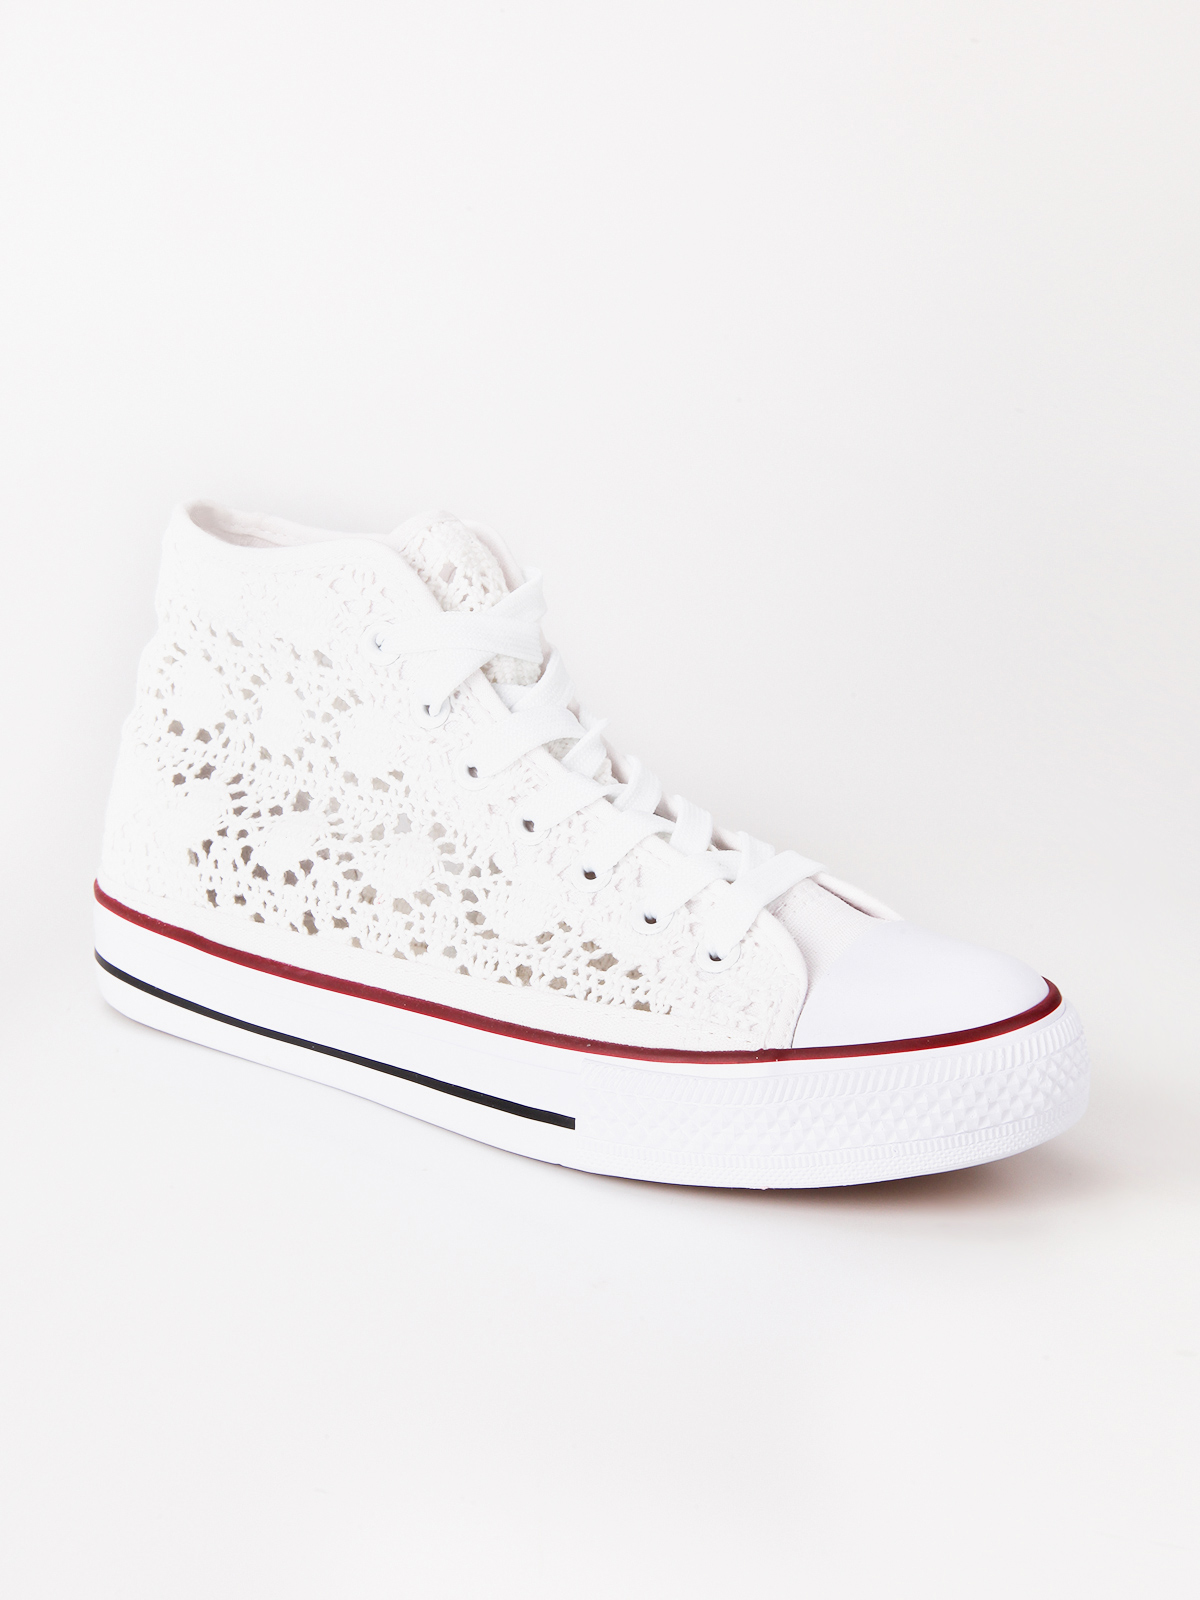 Hollow-out Casual Sneaker Shoes Woman Spring Summer New Fashion